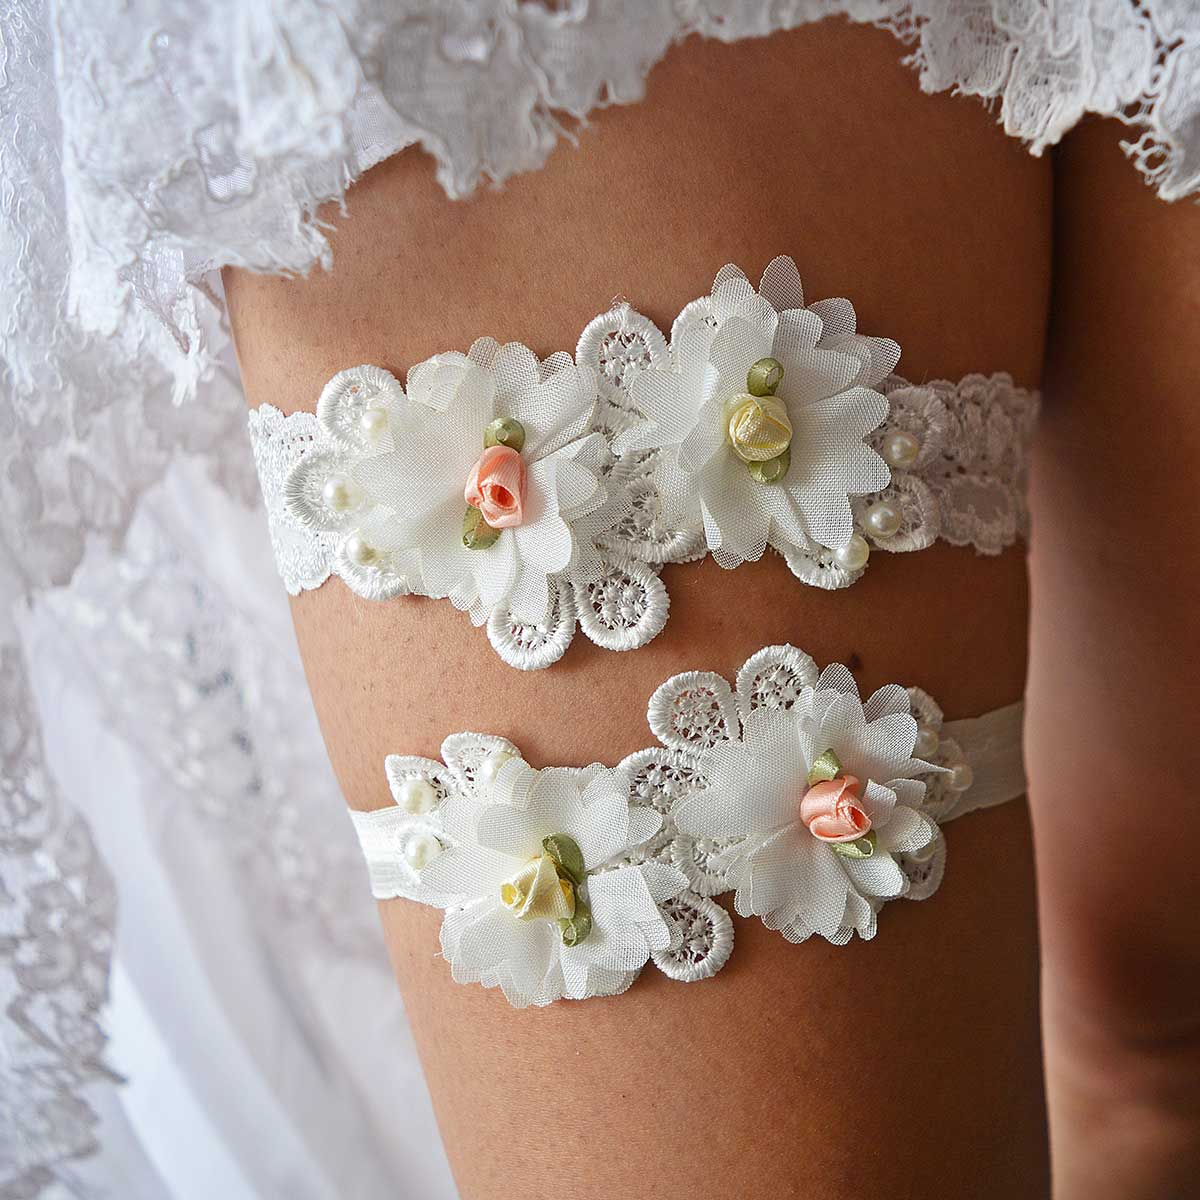 Off White Bridal Garter With Flowers Handmade - Wedding Garter - SuzannaM Designs